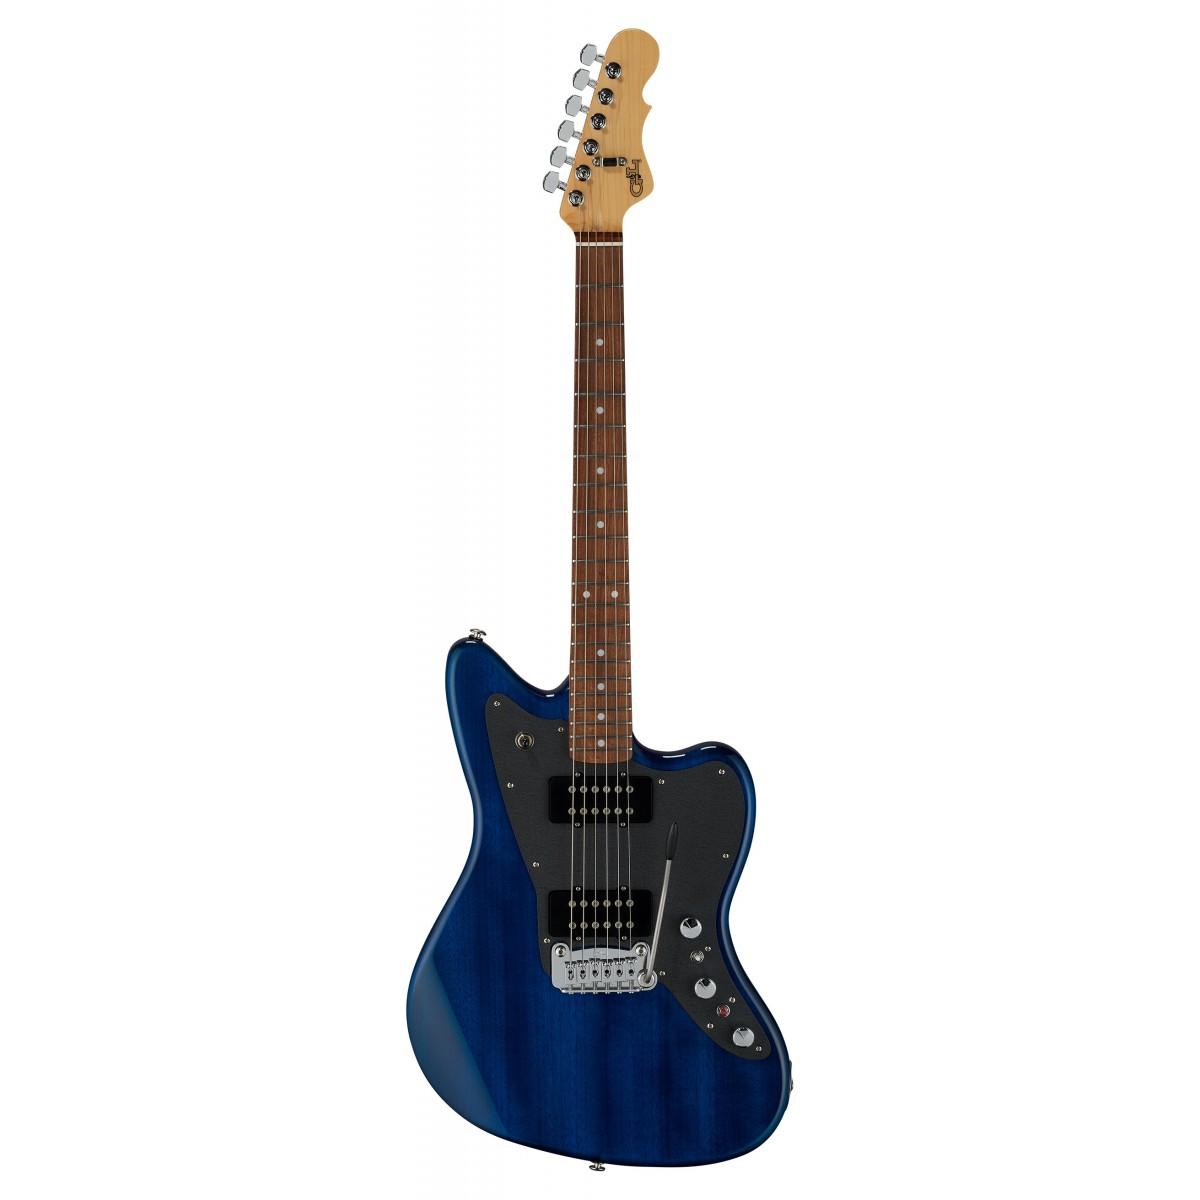 G&L CLF Research Doheny V12 (Clear Blue)